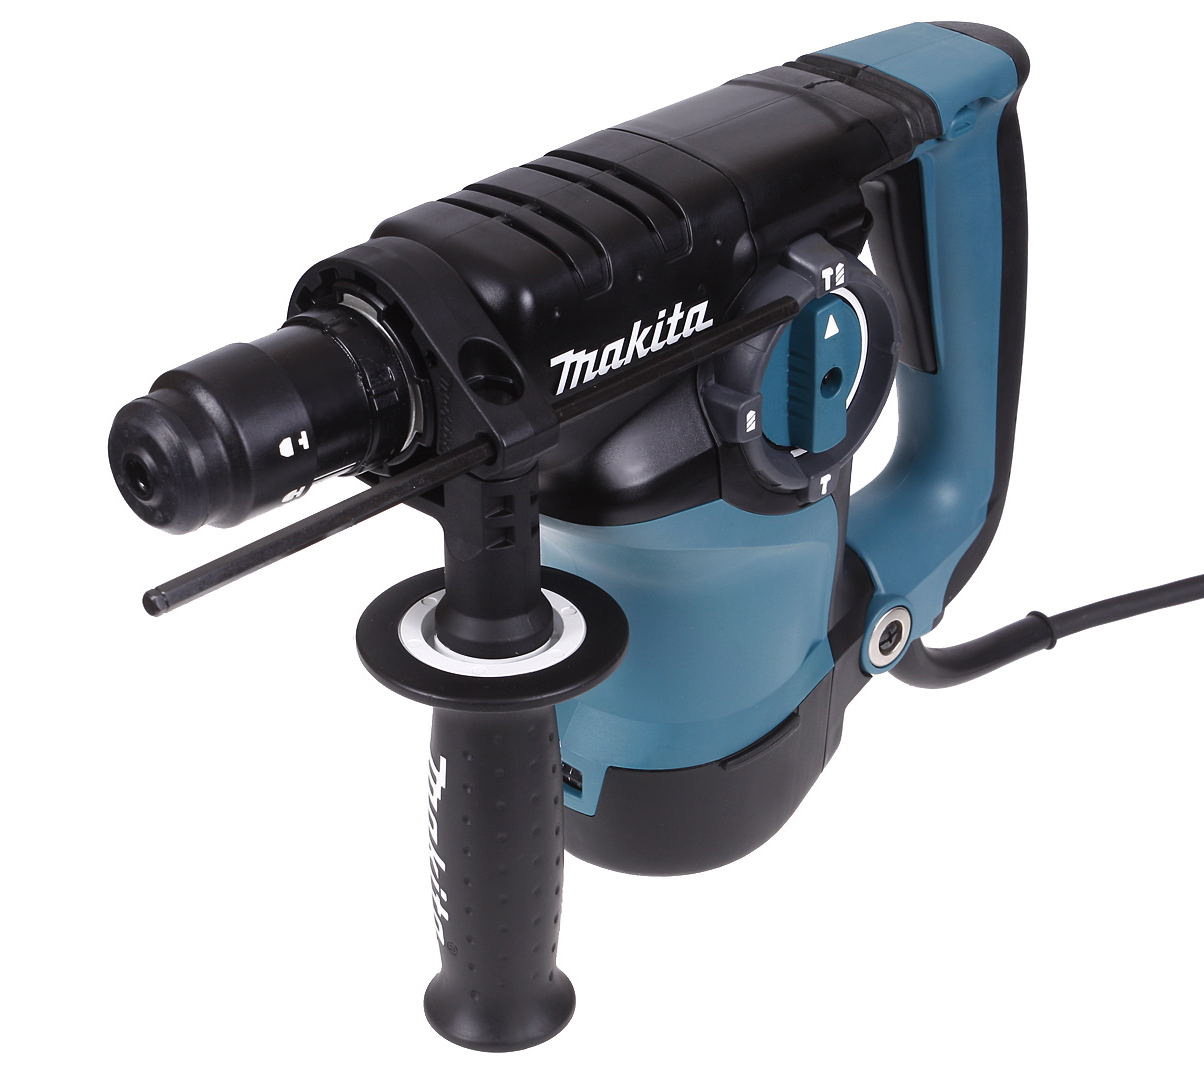 Перфоратор Makita Hr2811ft перфоратор makita hr2811ft